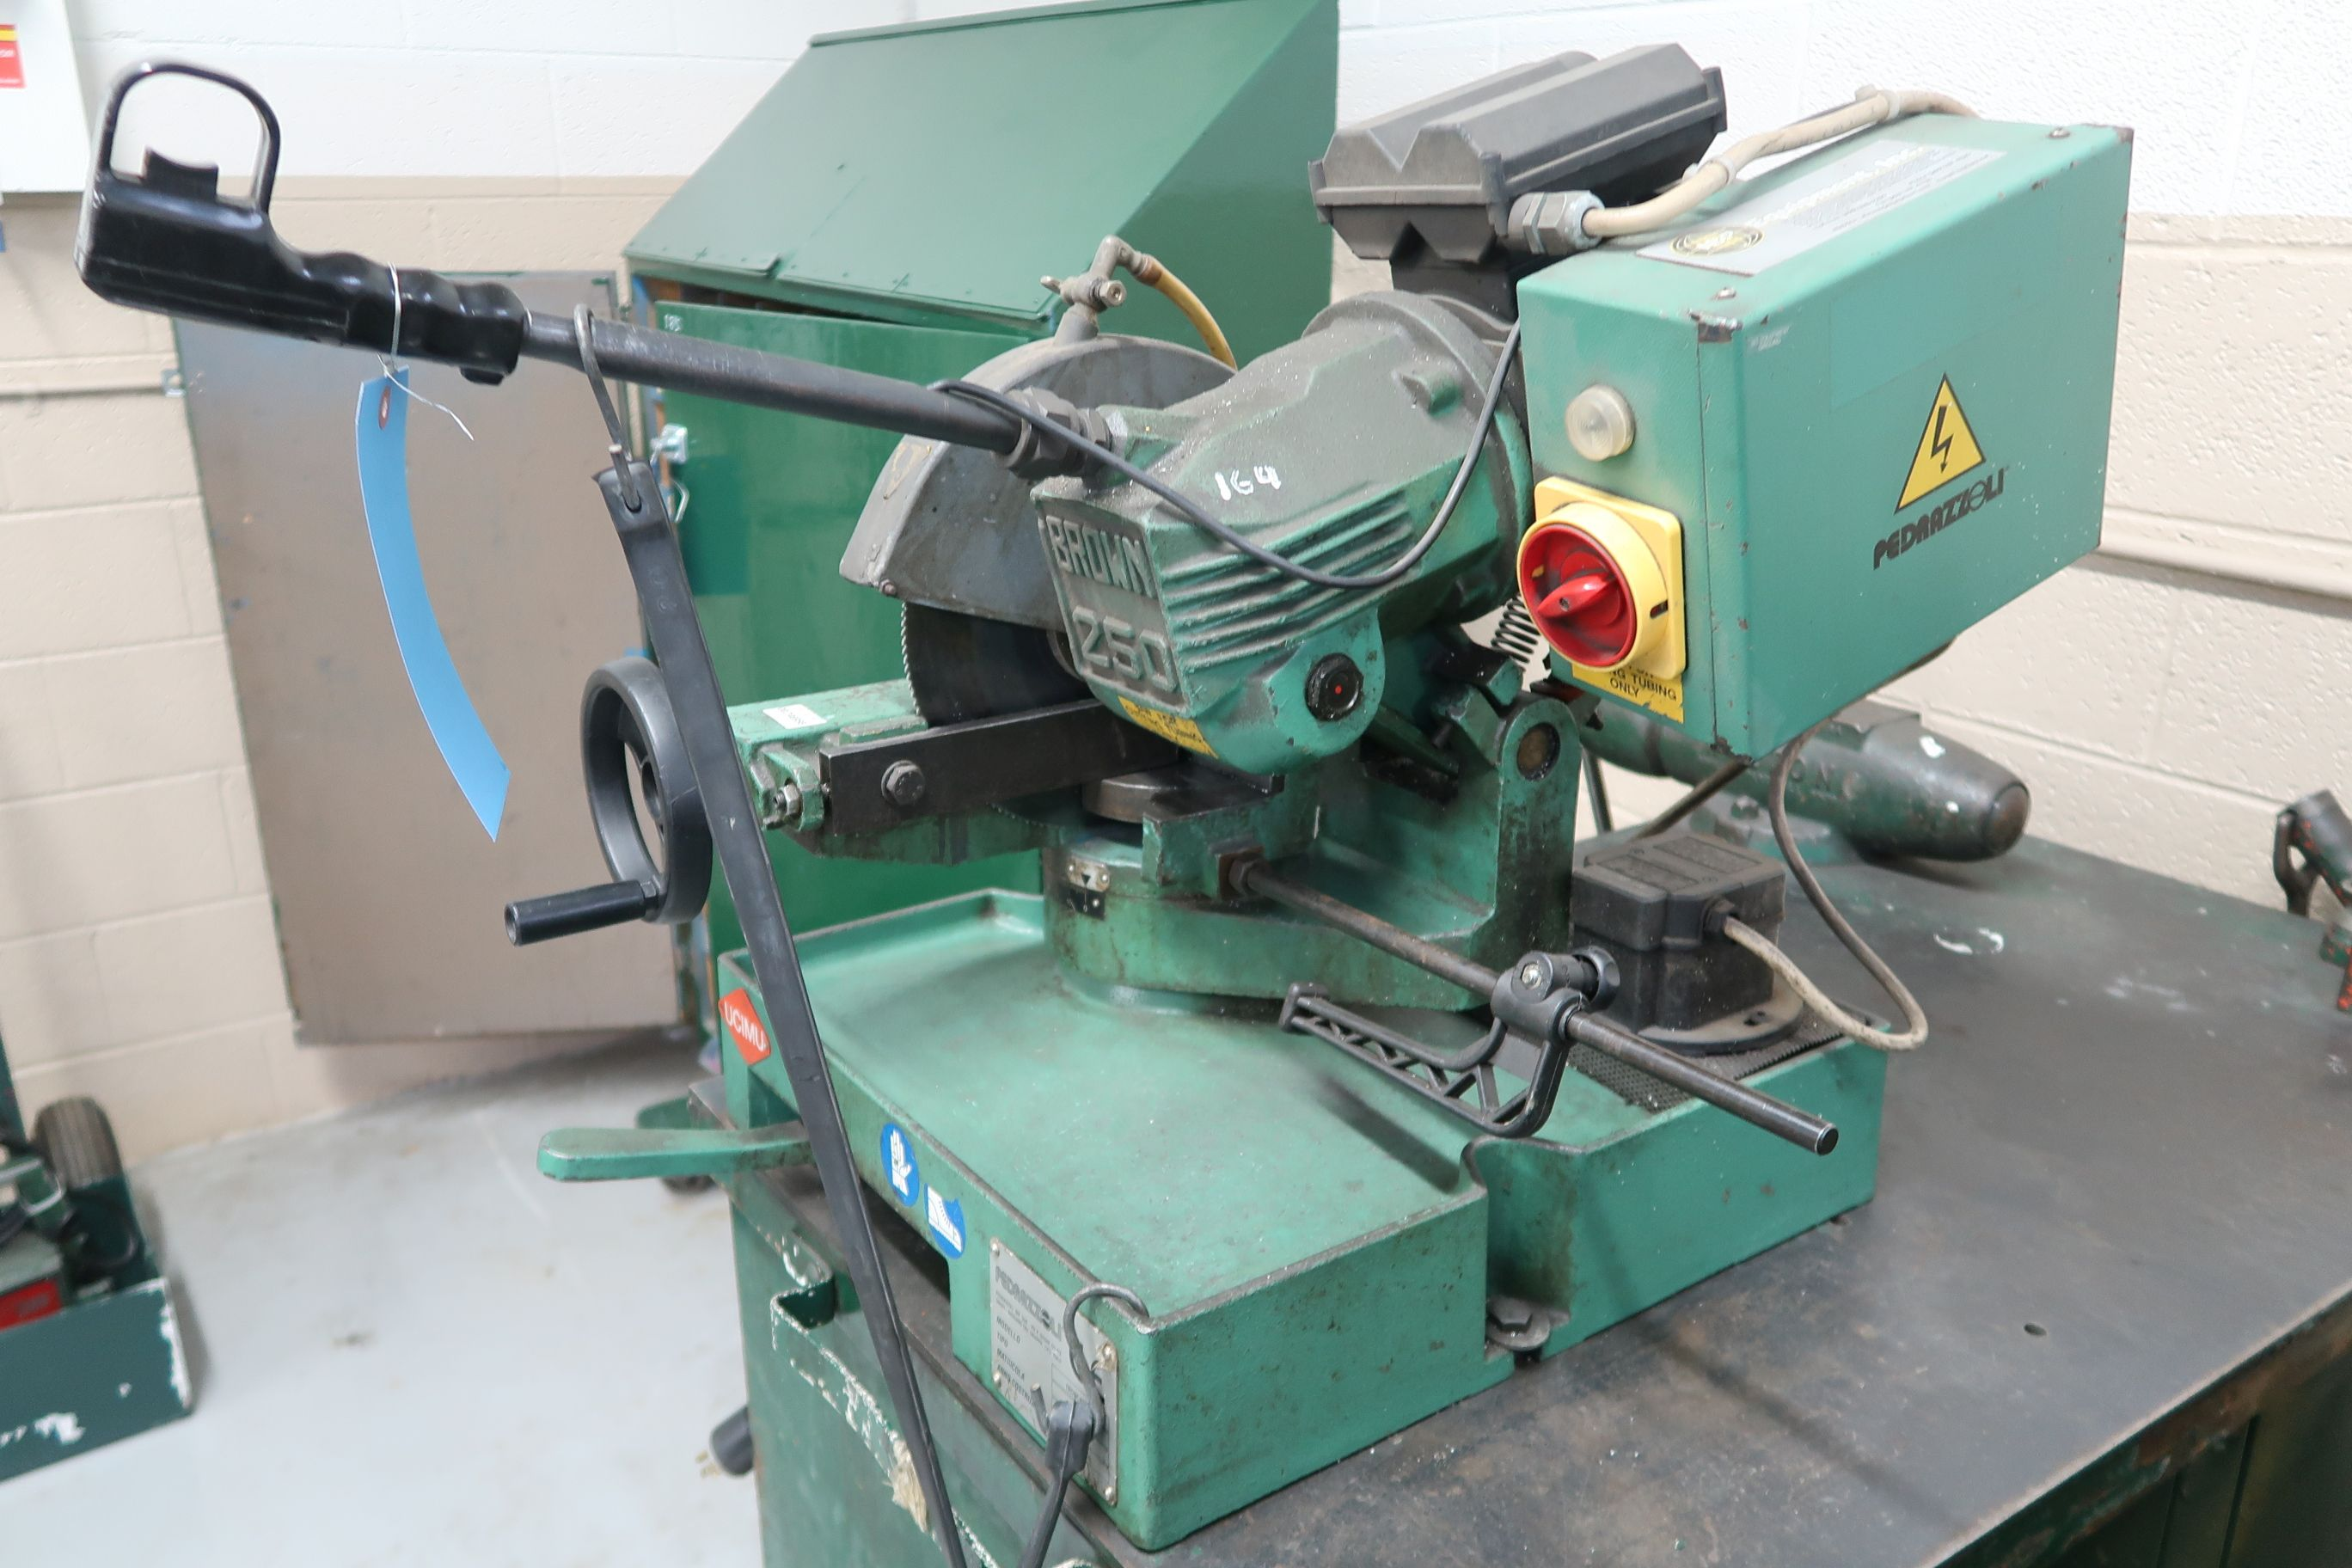 BROWN MODEL 250 TABLE MOUNTED SAW; S/N 029113, MOUNTED ON PORTABLE JOBBOX WITH 4-1/2 BENCH VISE - Image 3 of 6